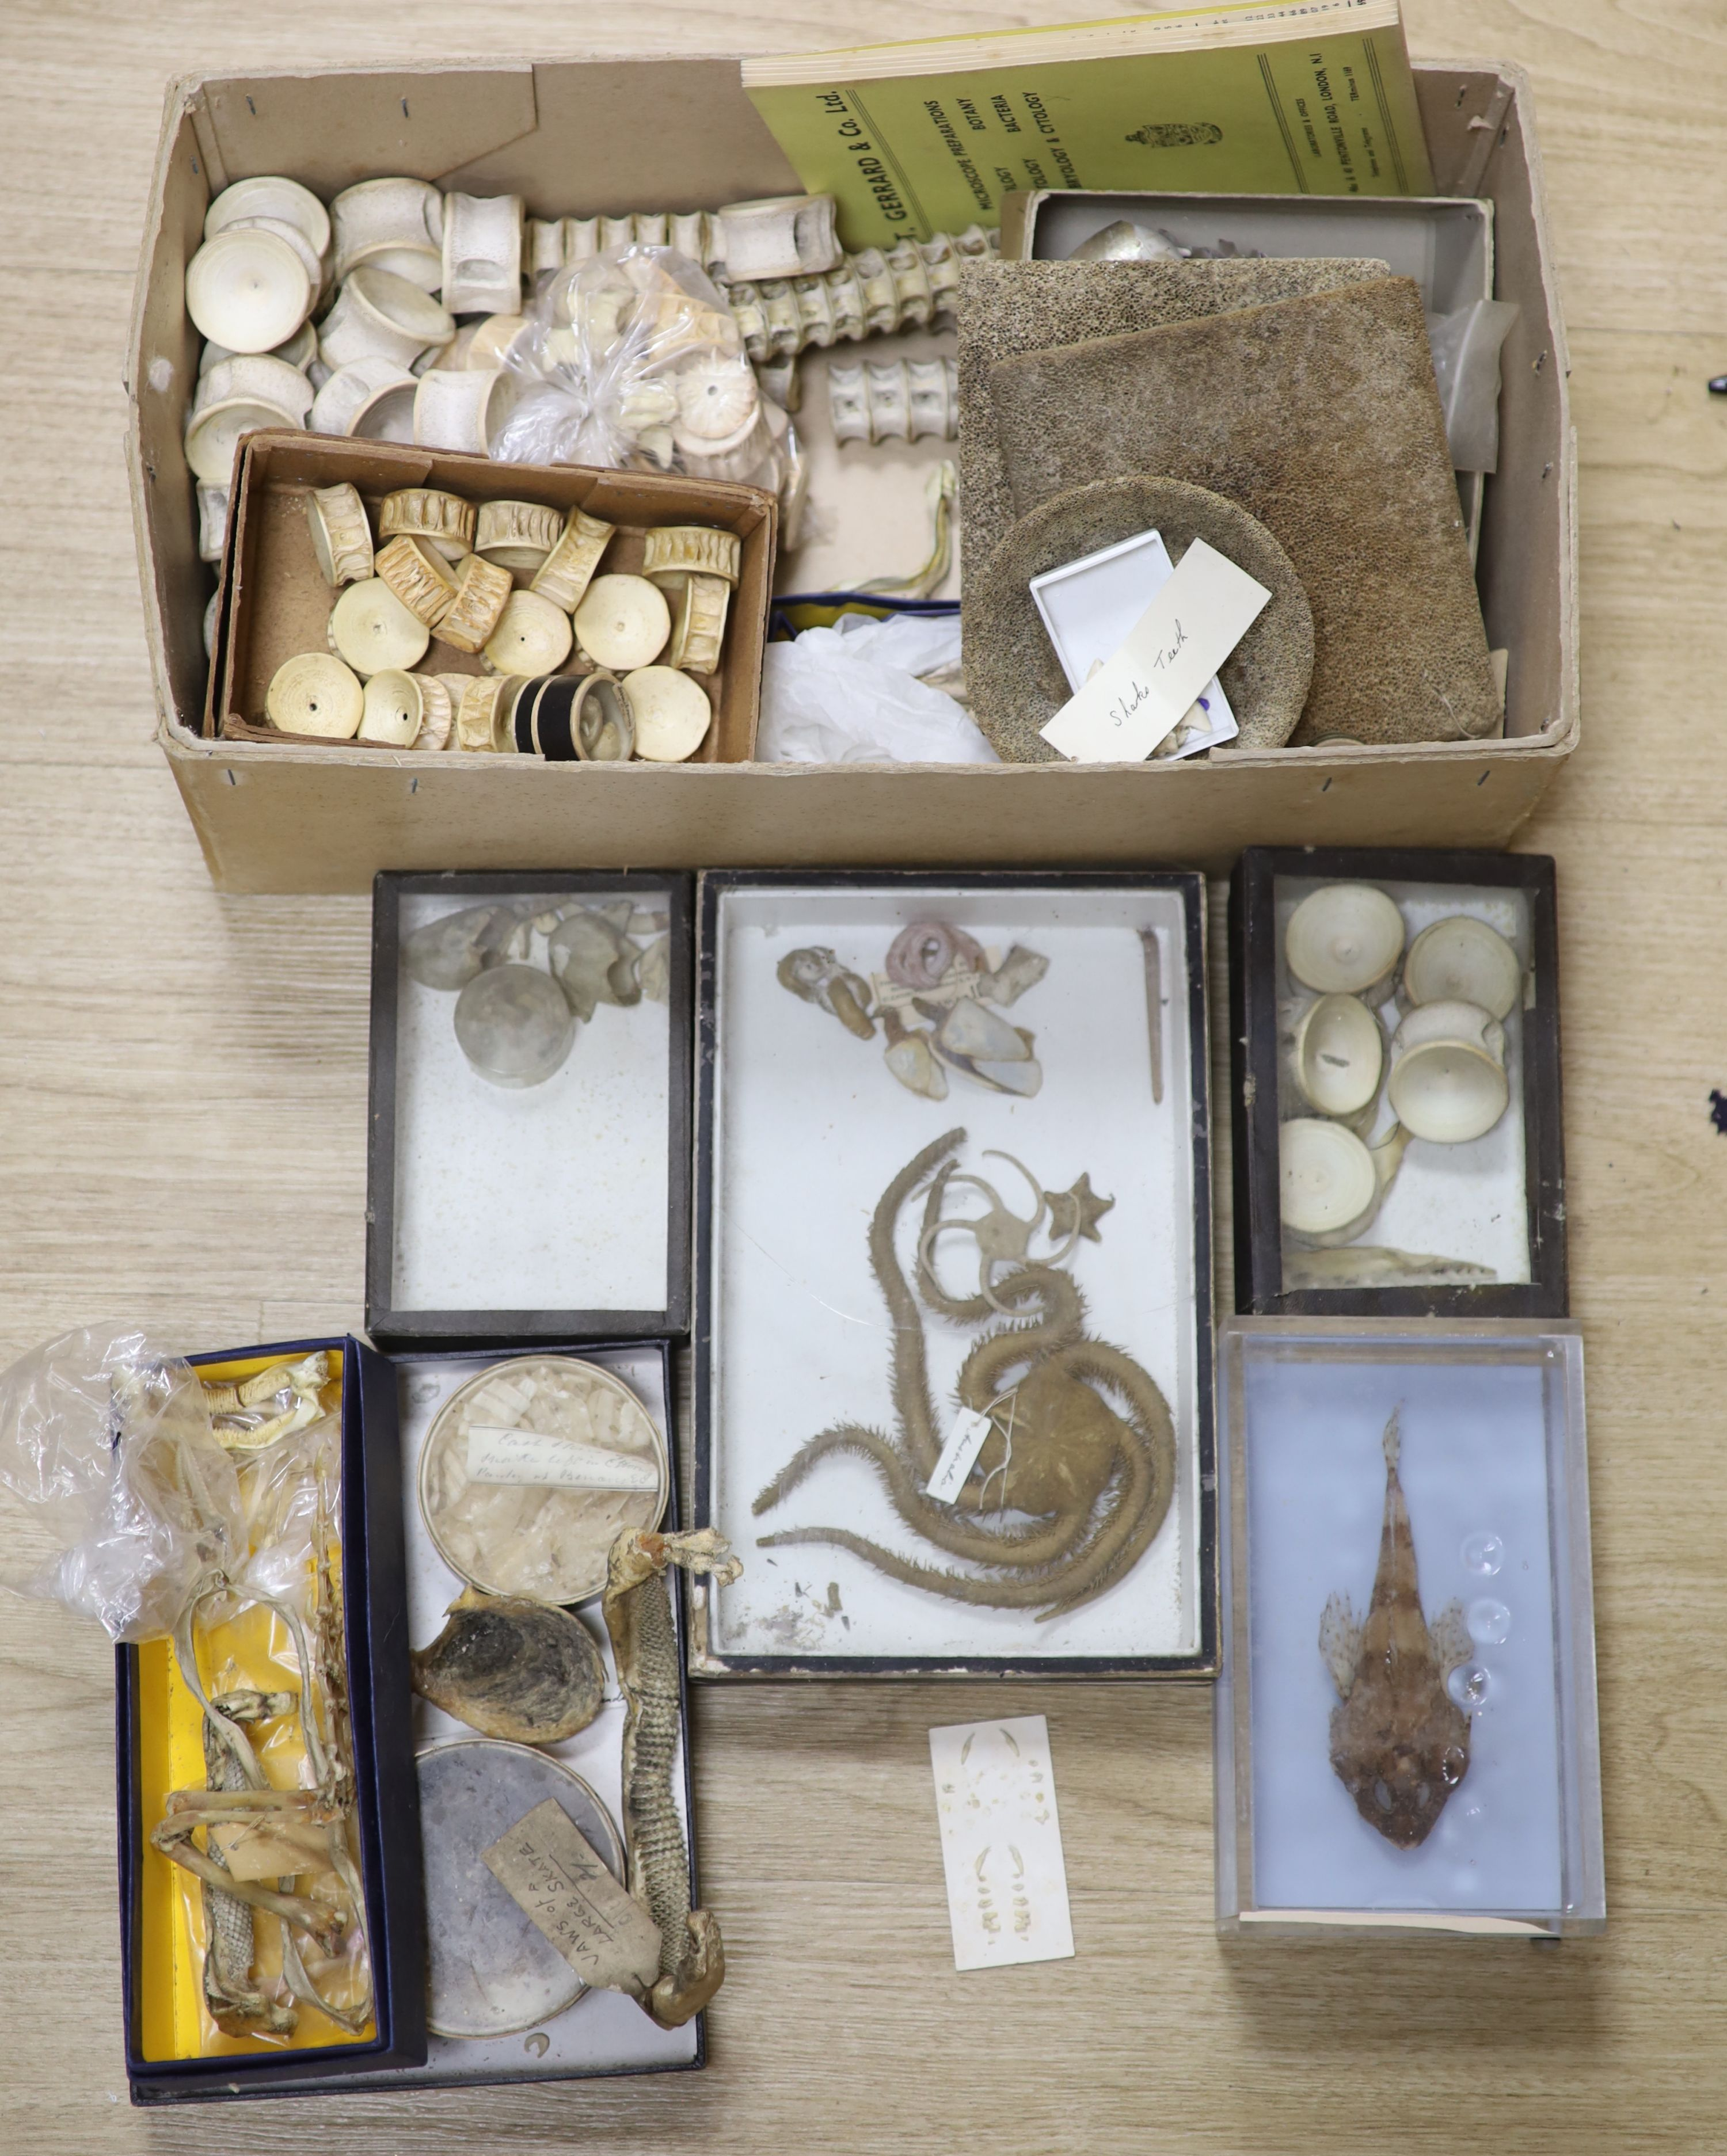 A collection of sea creature and reptile specimens, most collected before 1945, to include shark's